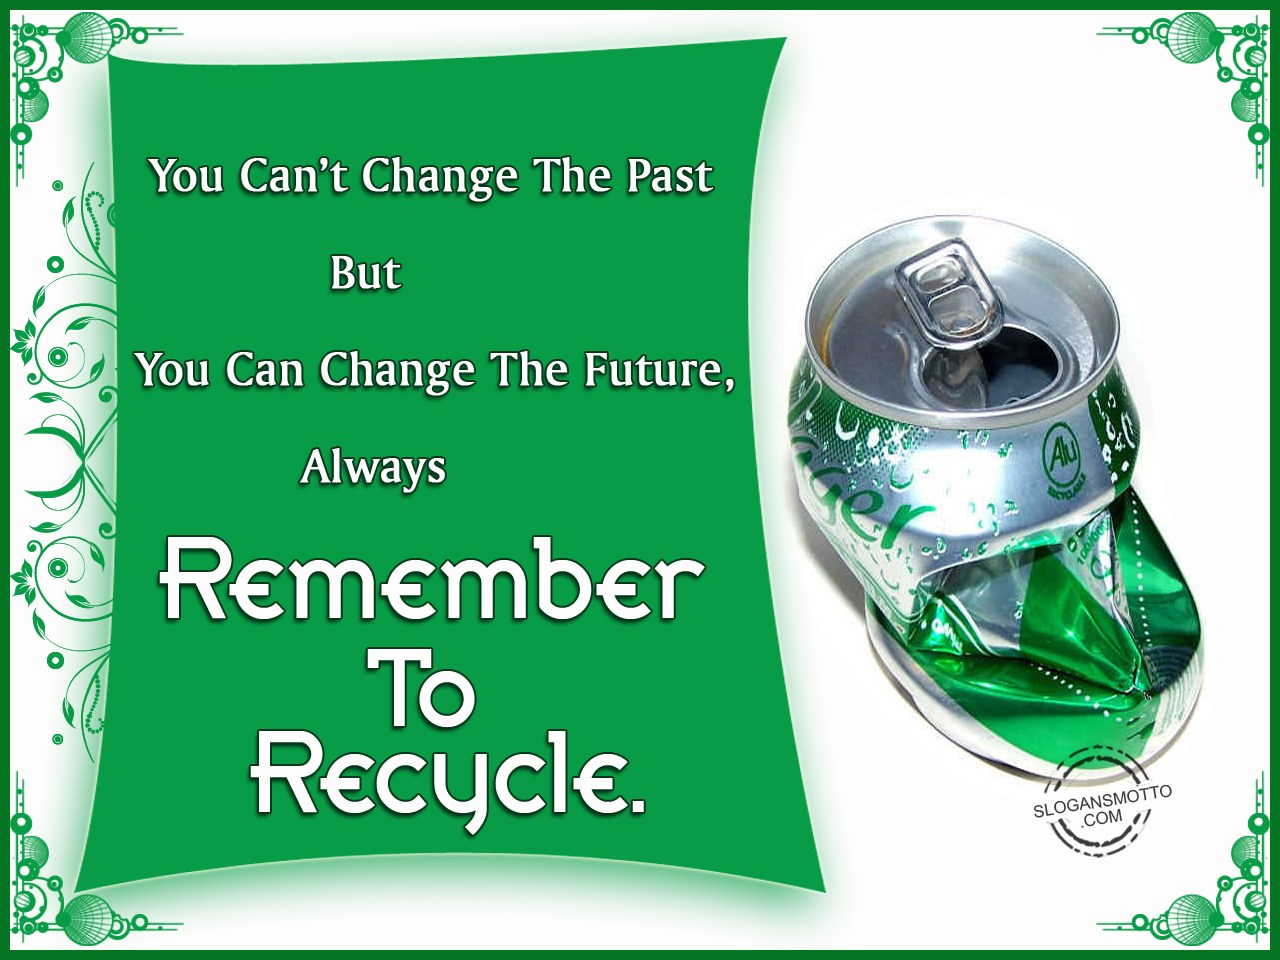 Recycle Slogans and Sayings